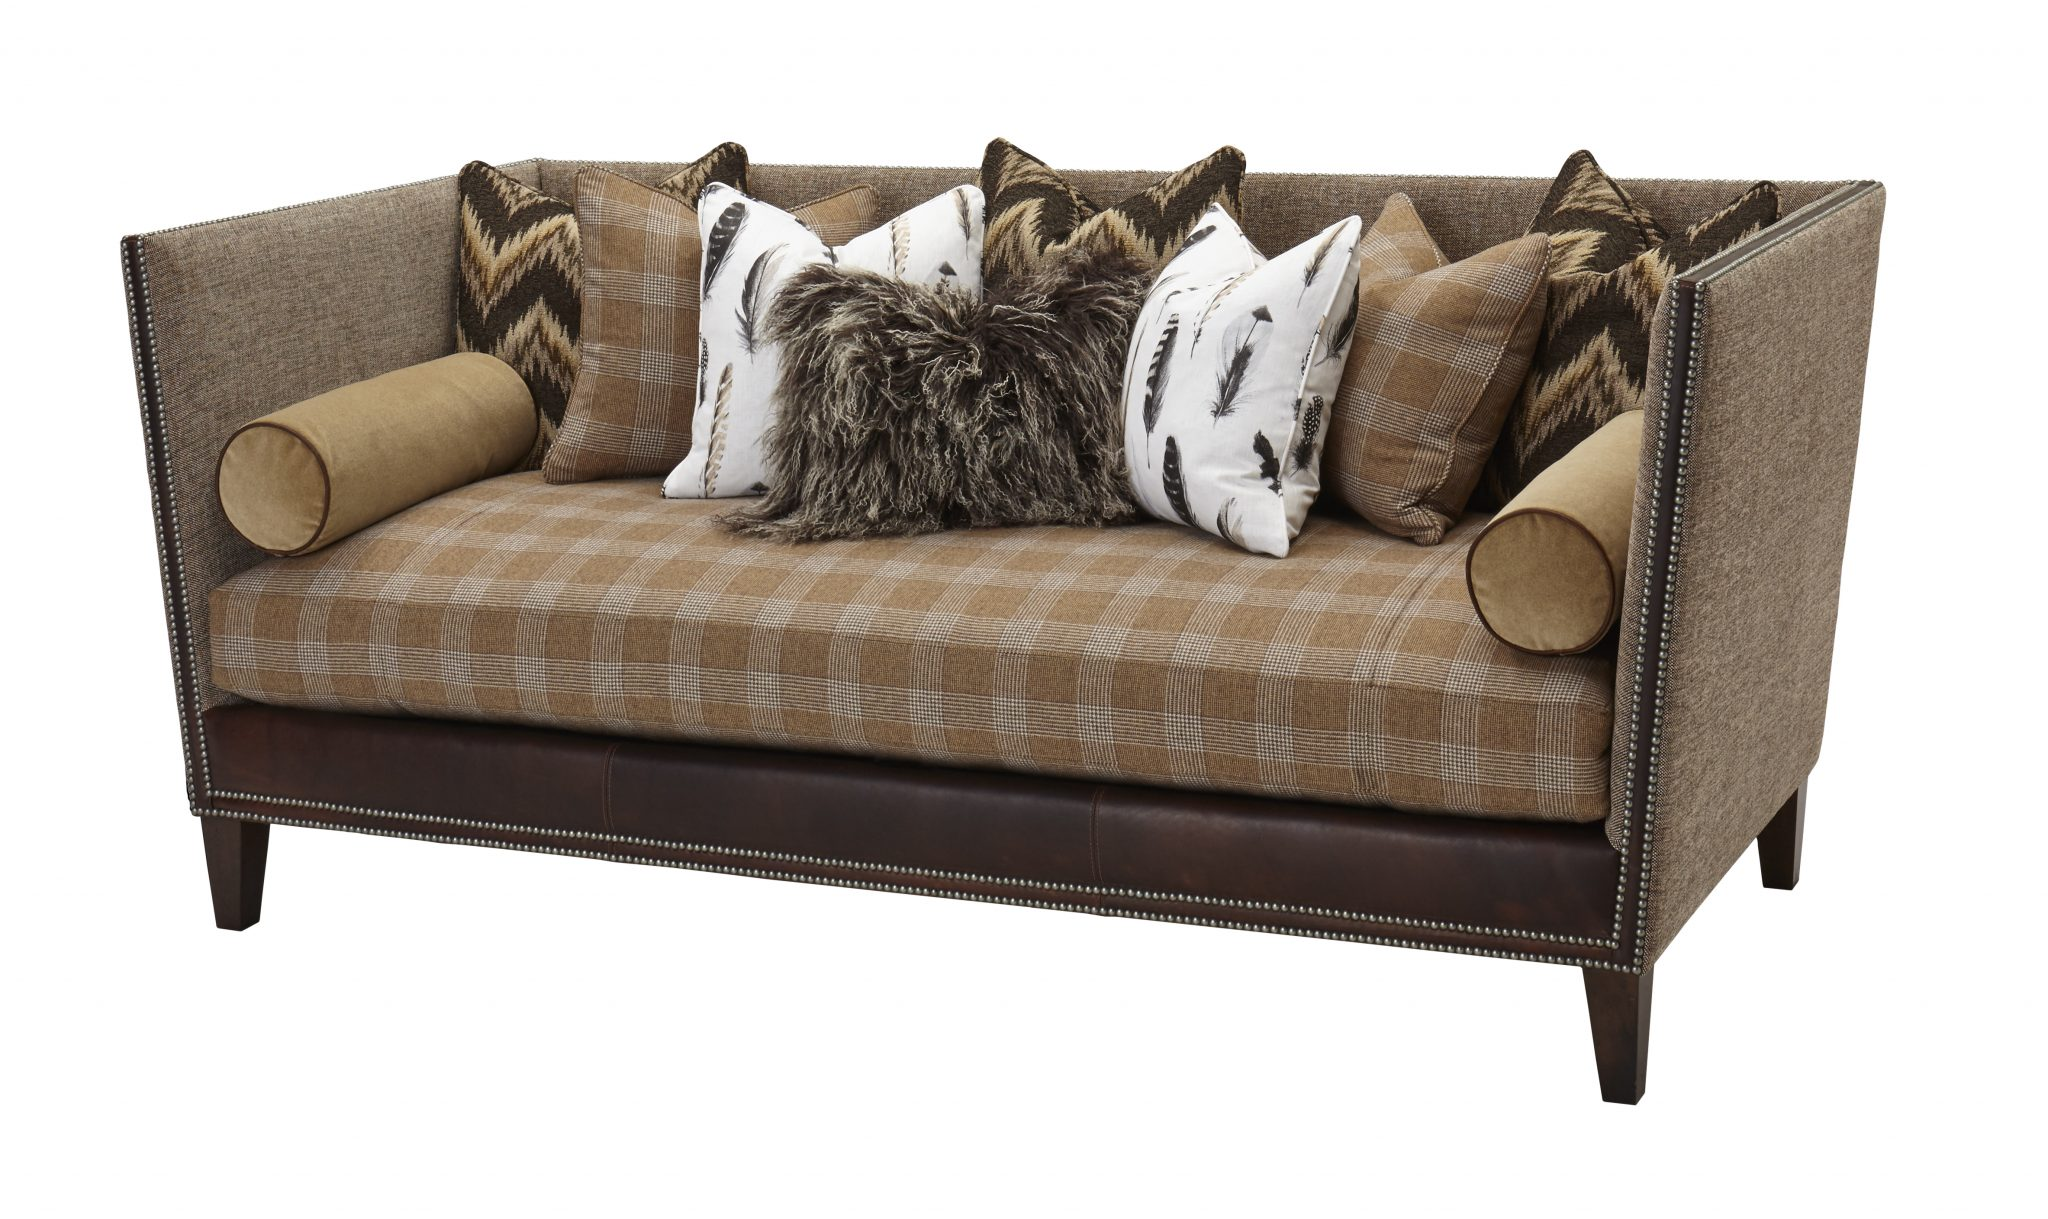 settee what by the pin massoud using awesome leather barbarossa pattern furniture navajo cupboard created